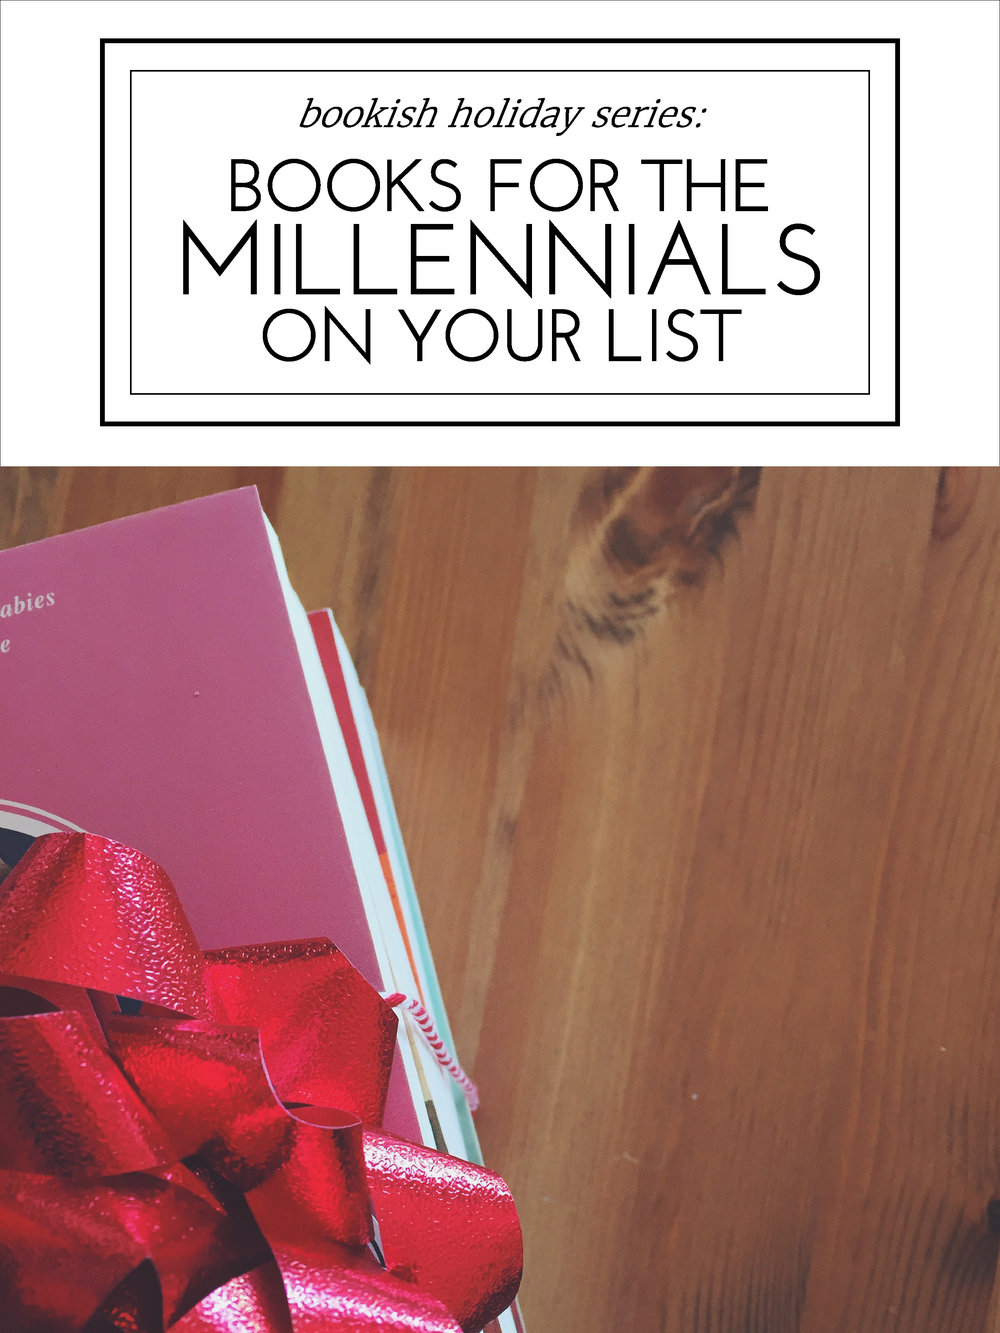 Books for the Millennials on Your Christmas List